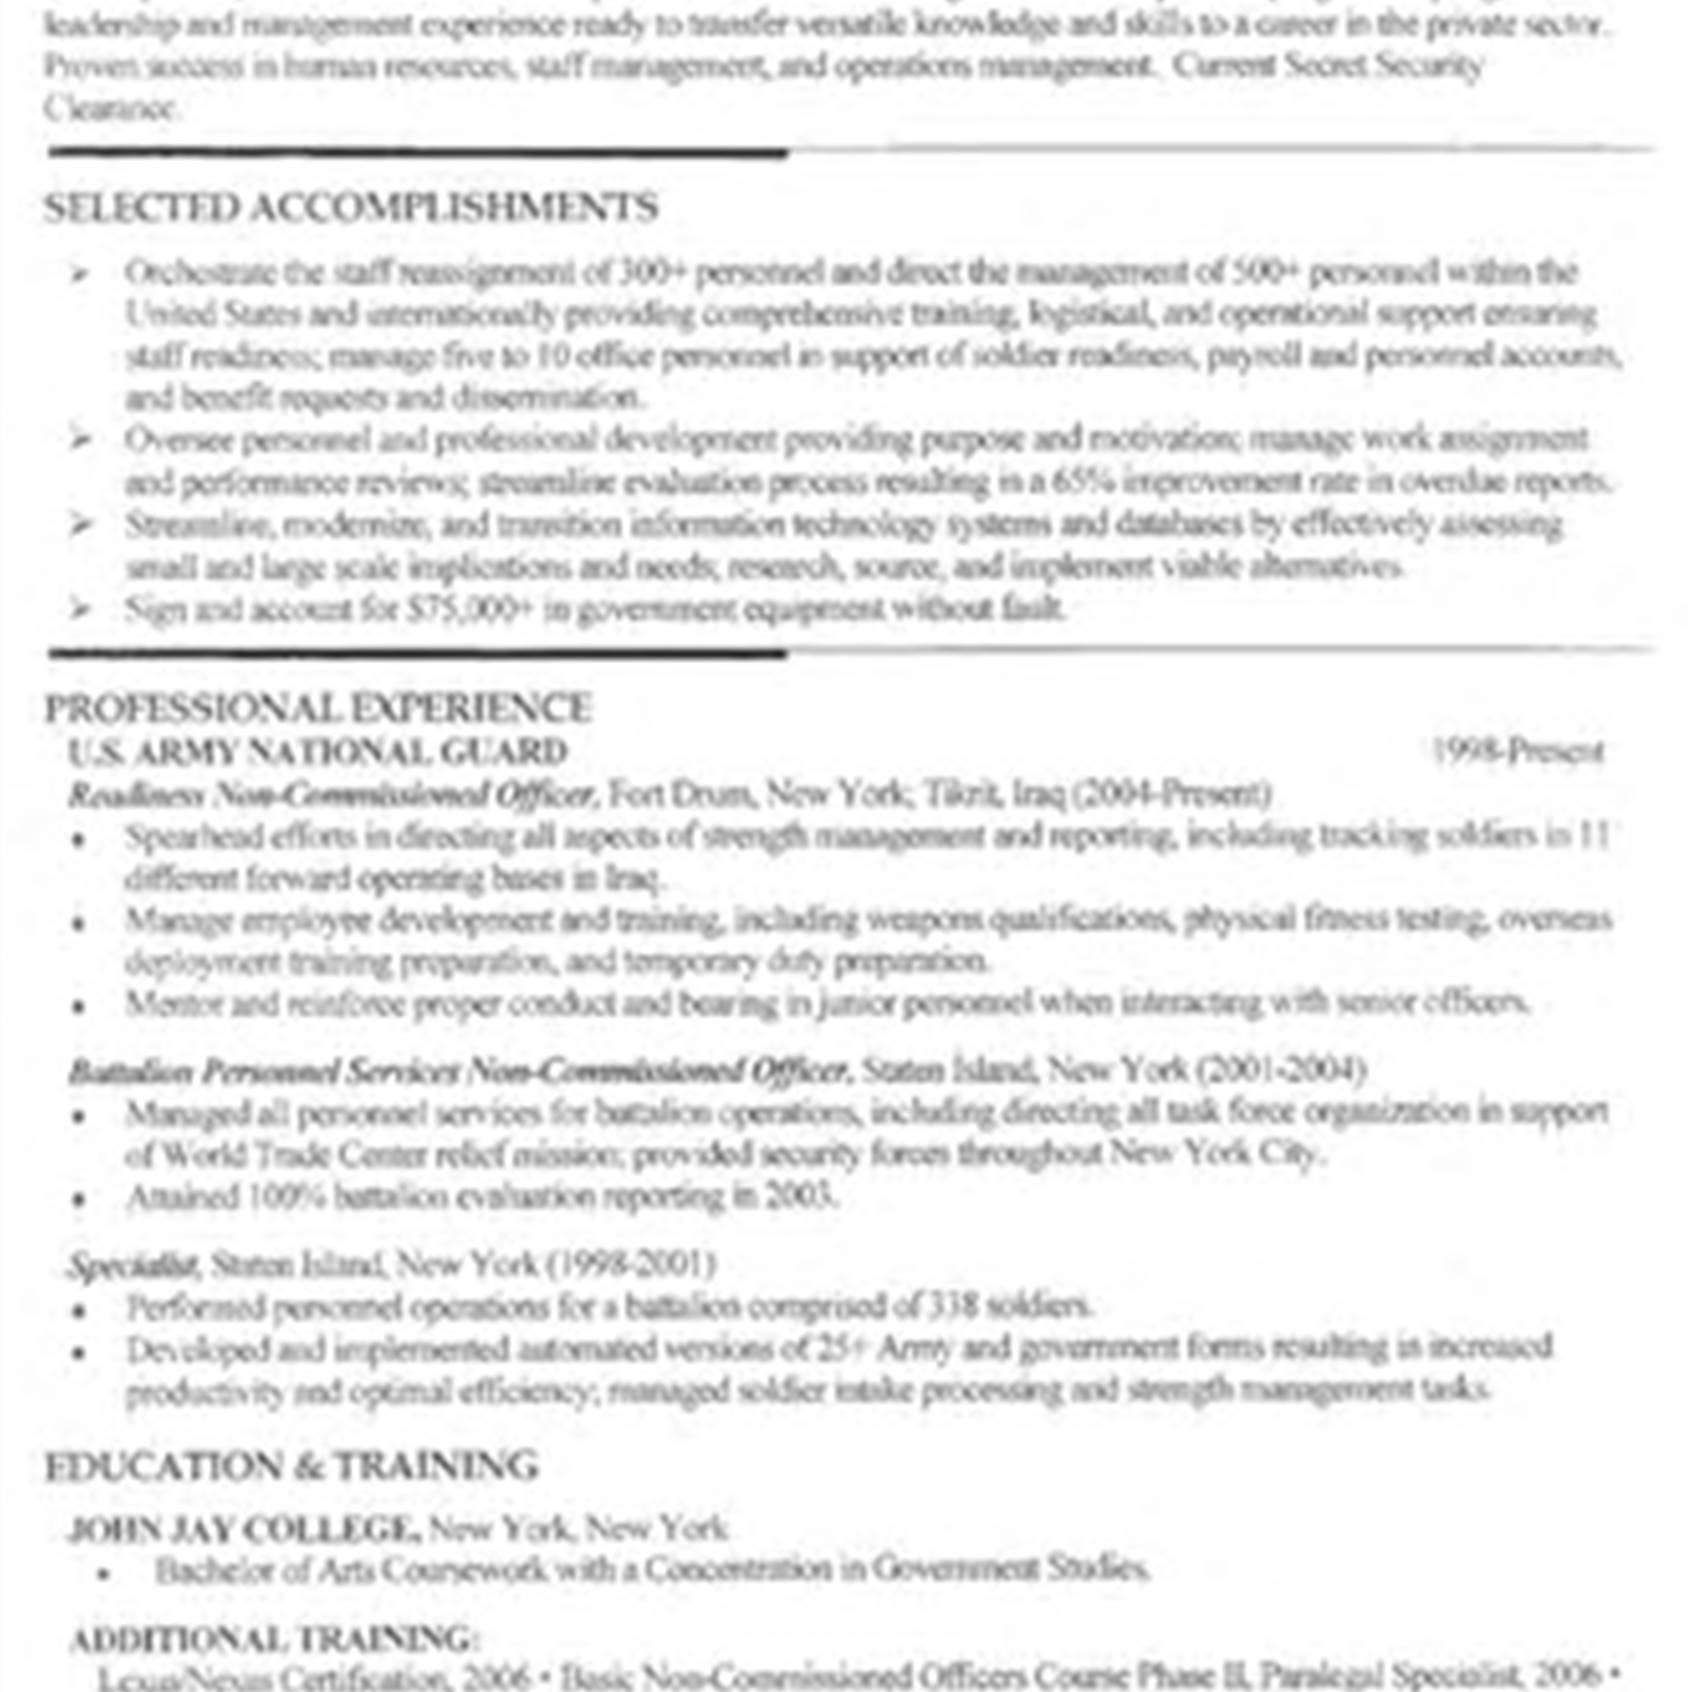 resume writers near me example-How To Write A Resume For Government Jobs Inspirational Government Resume Writers Fresh Resume Writing Services For 8-t